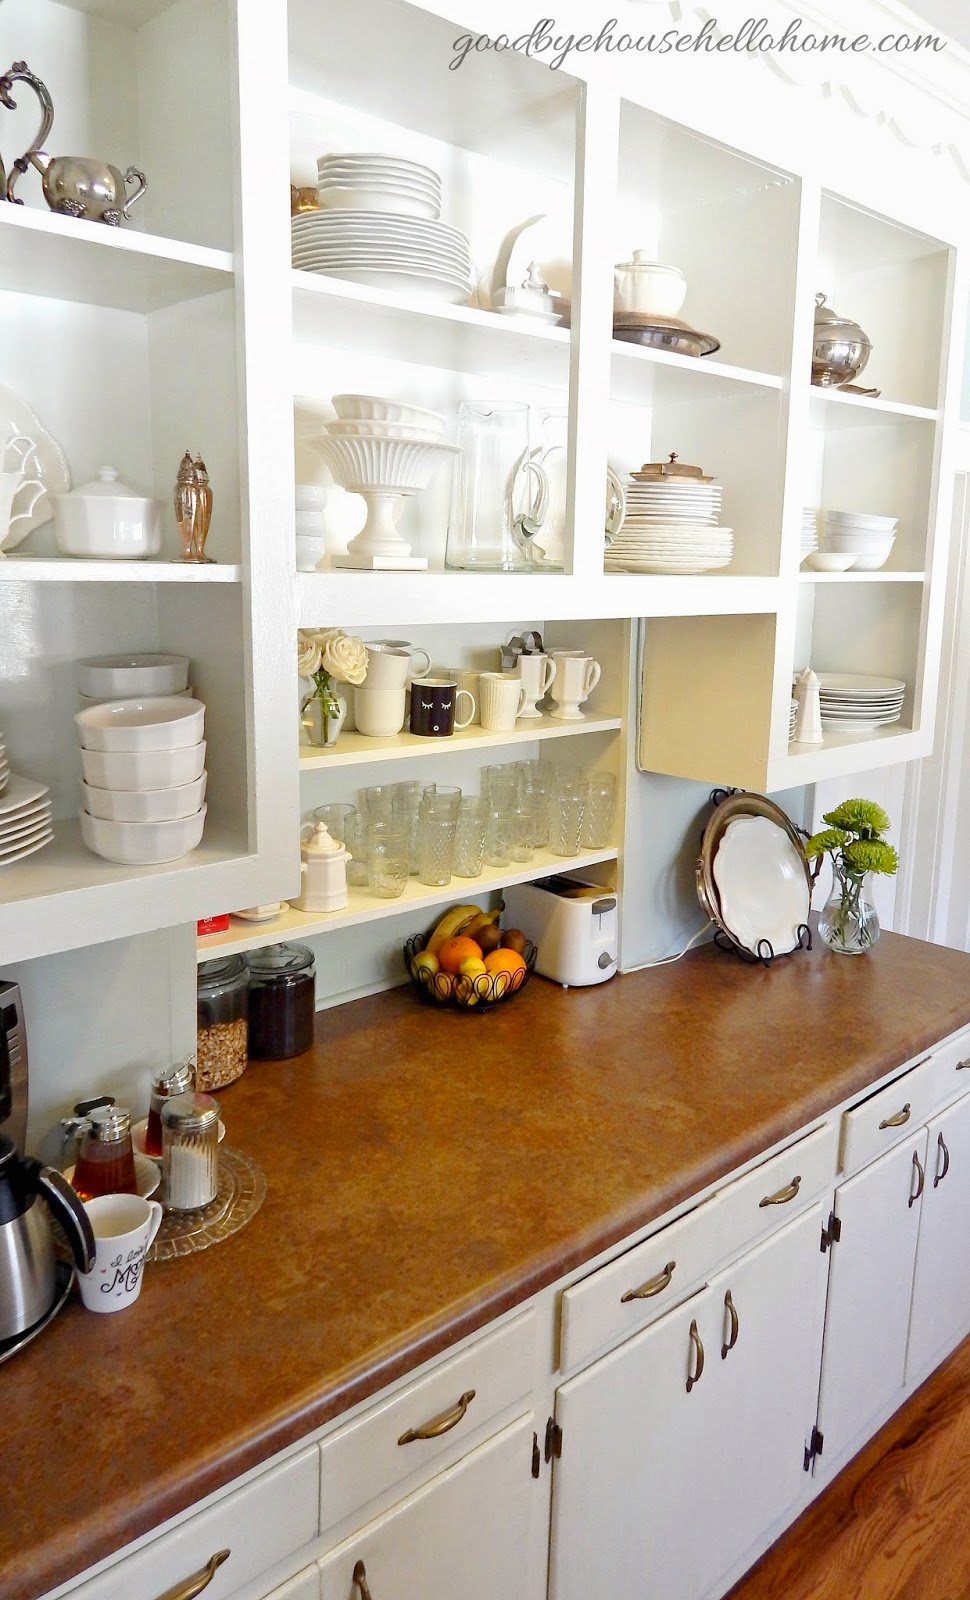 Goodbye, House. Hello, Home! Blog : Open Kitchen Cabinets ...